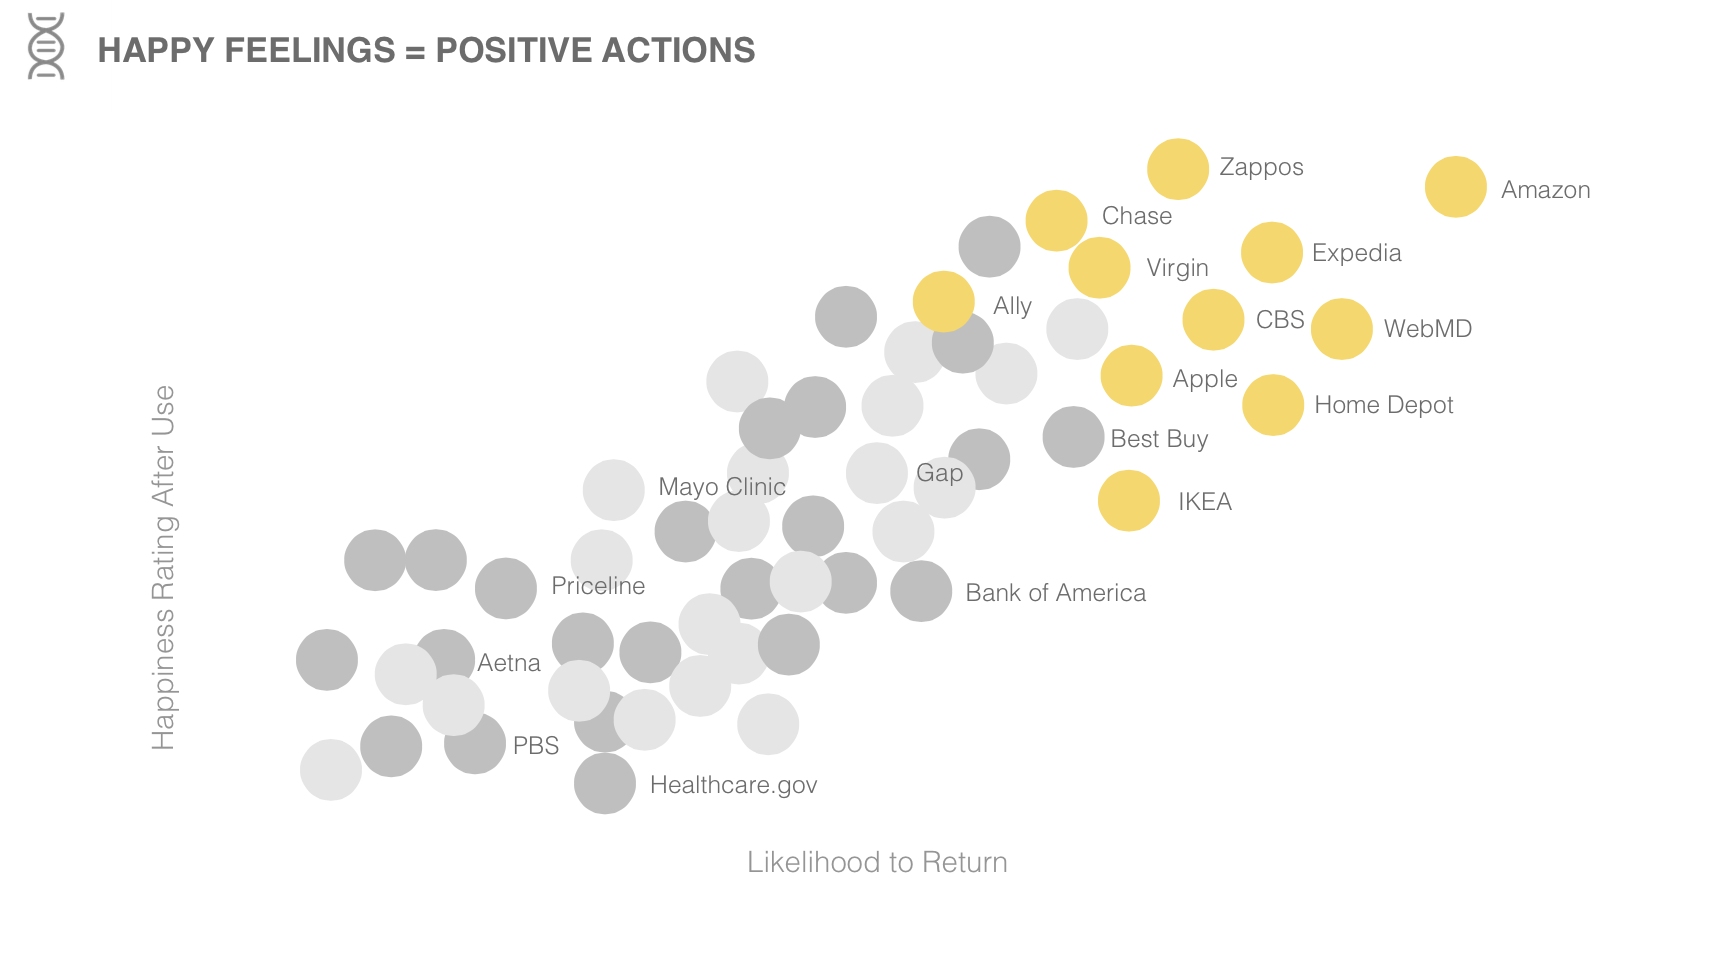 Bubble chart of happiness and likelihood to return